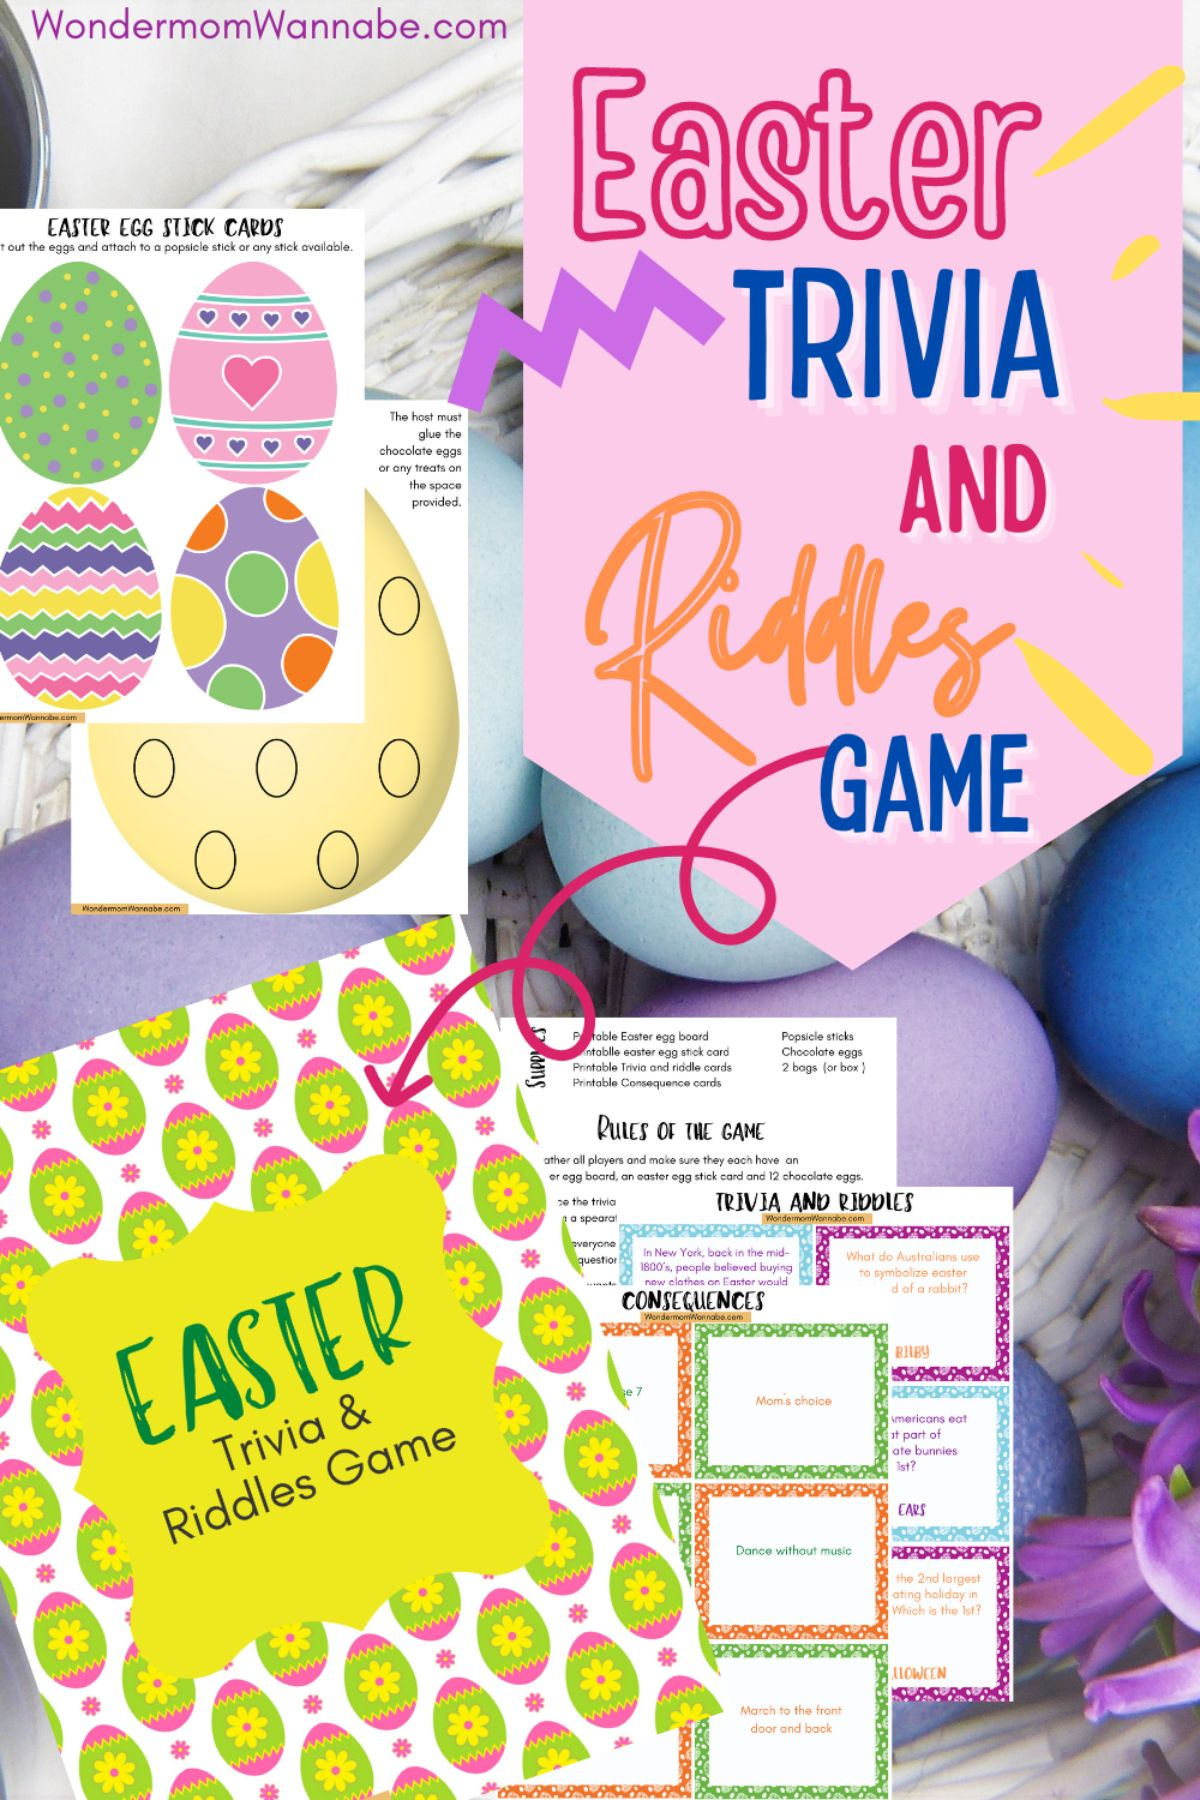 This Easter Trivia Game is a fun activity for everyone in the family -- kids and adults alike! Plus tips for fun variations. #easter #trivia #game #freeprintables via @wondermomwannab